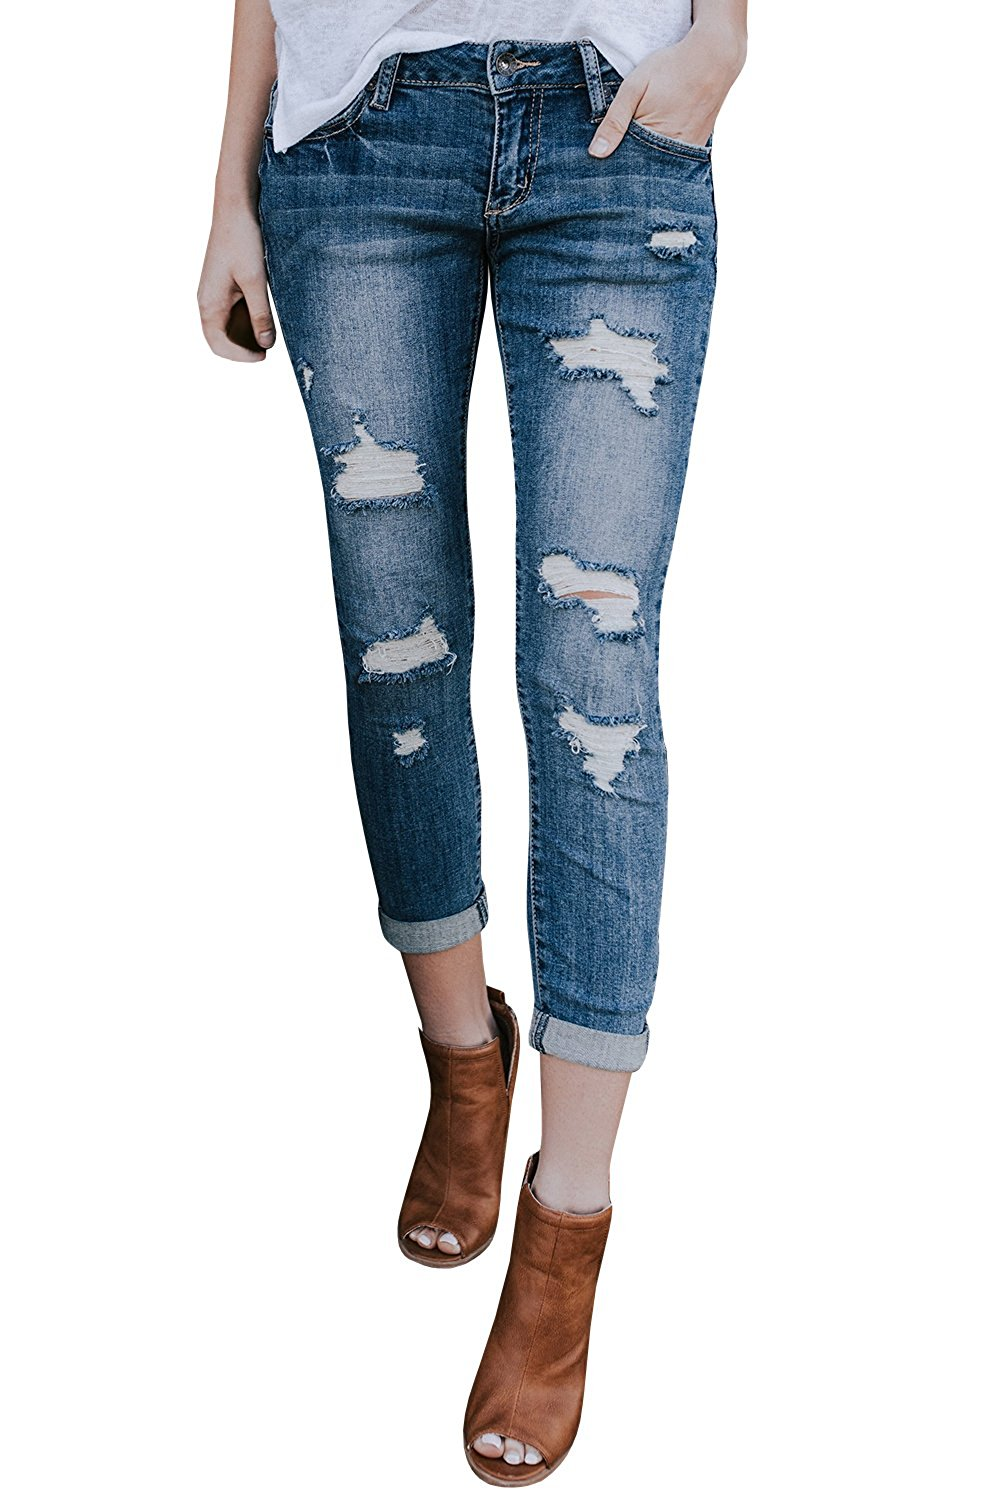 c3f8fc37d6034 Get Quotations · Gemijack Womens Ripped Jeans Skinny Boyfriend Distressed  Blue Destroyed Cropped Denim Pants